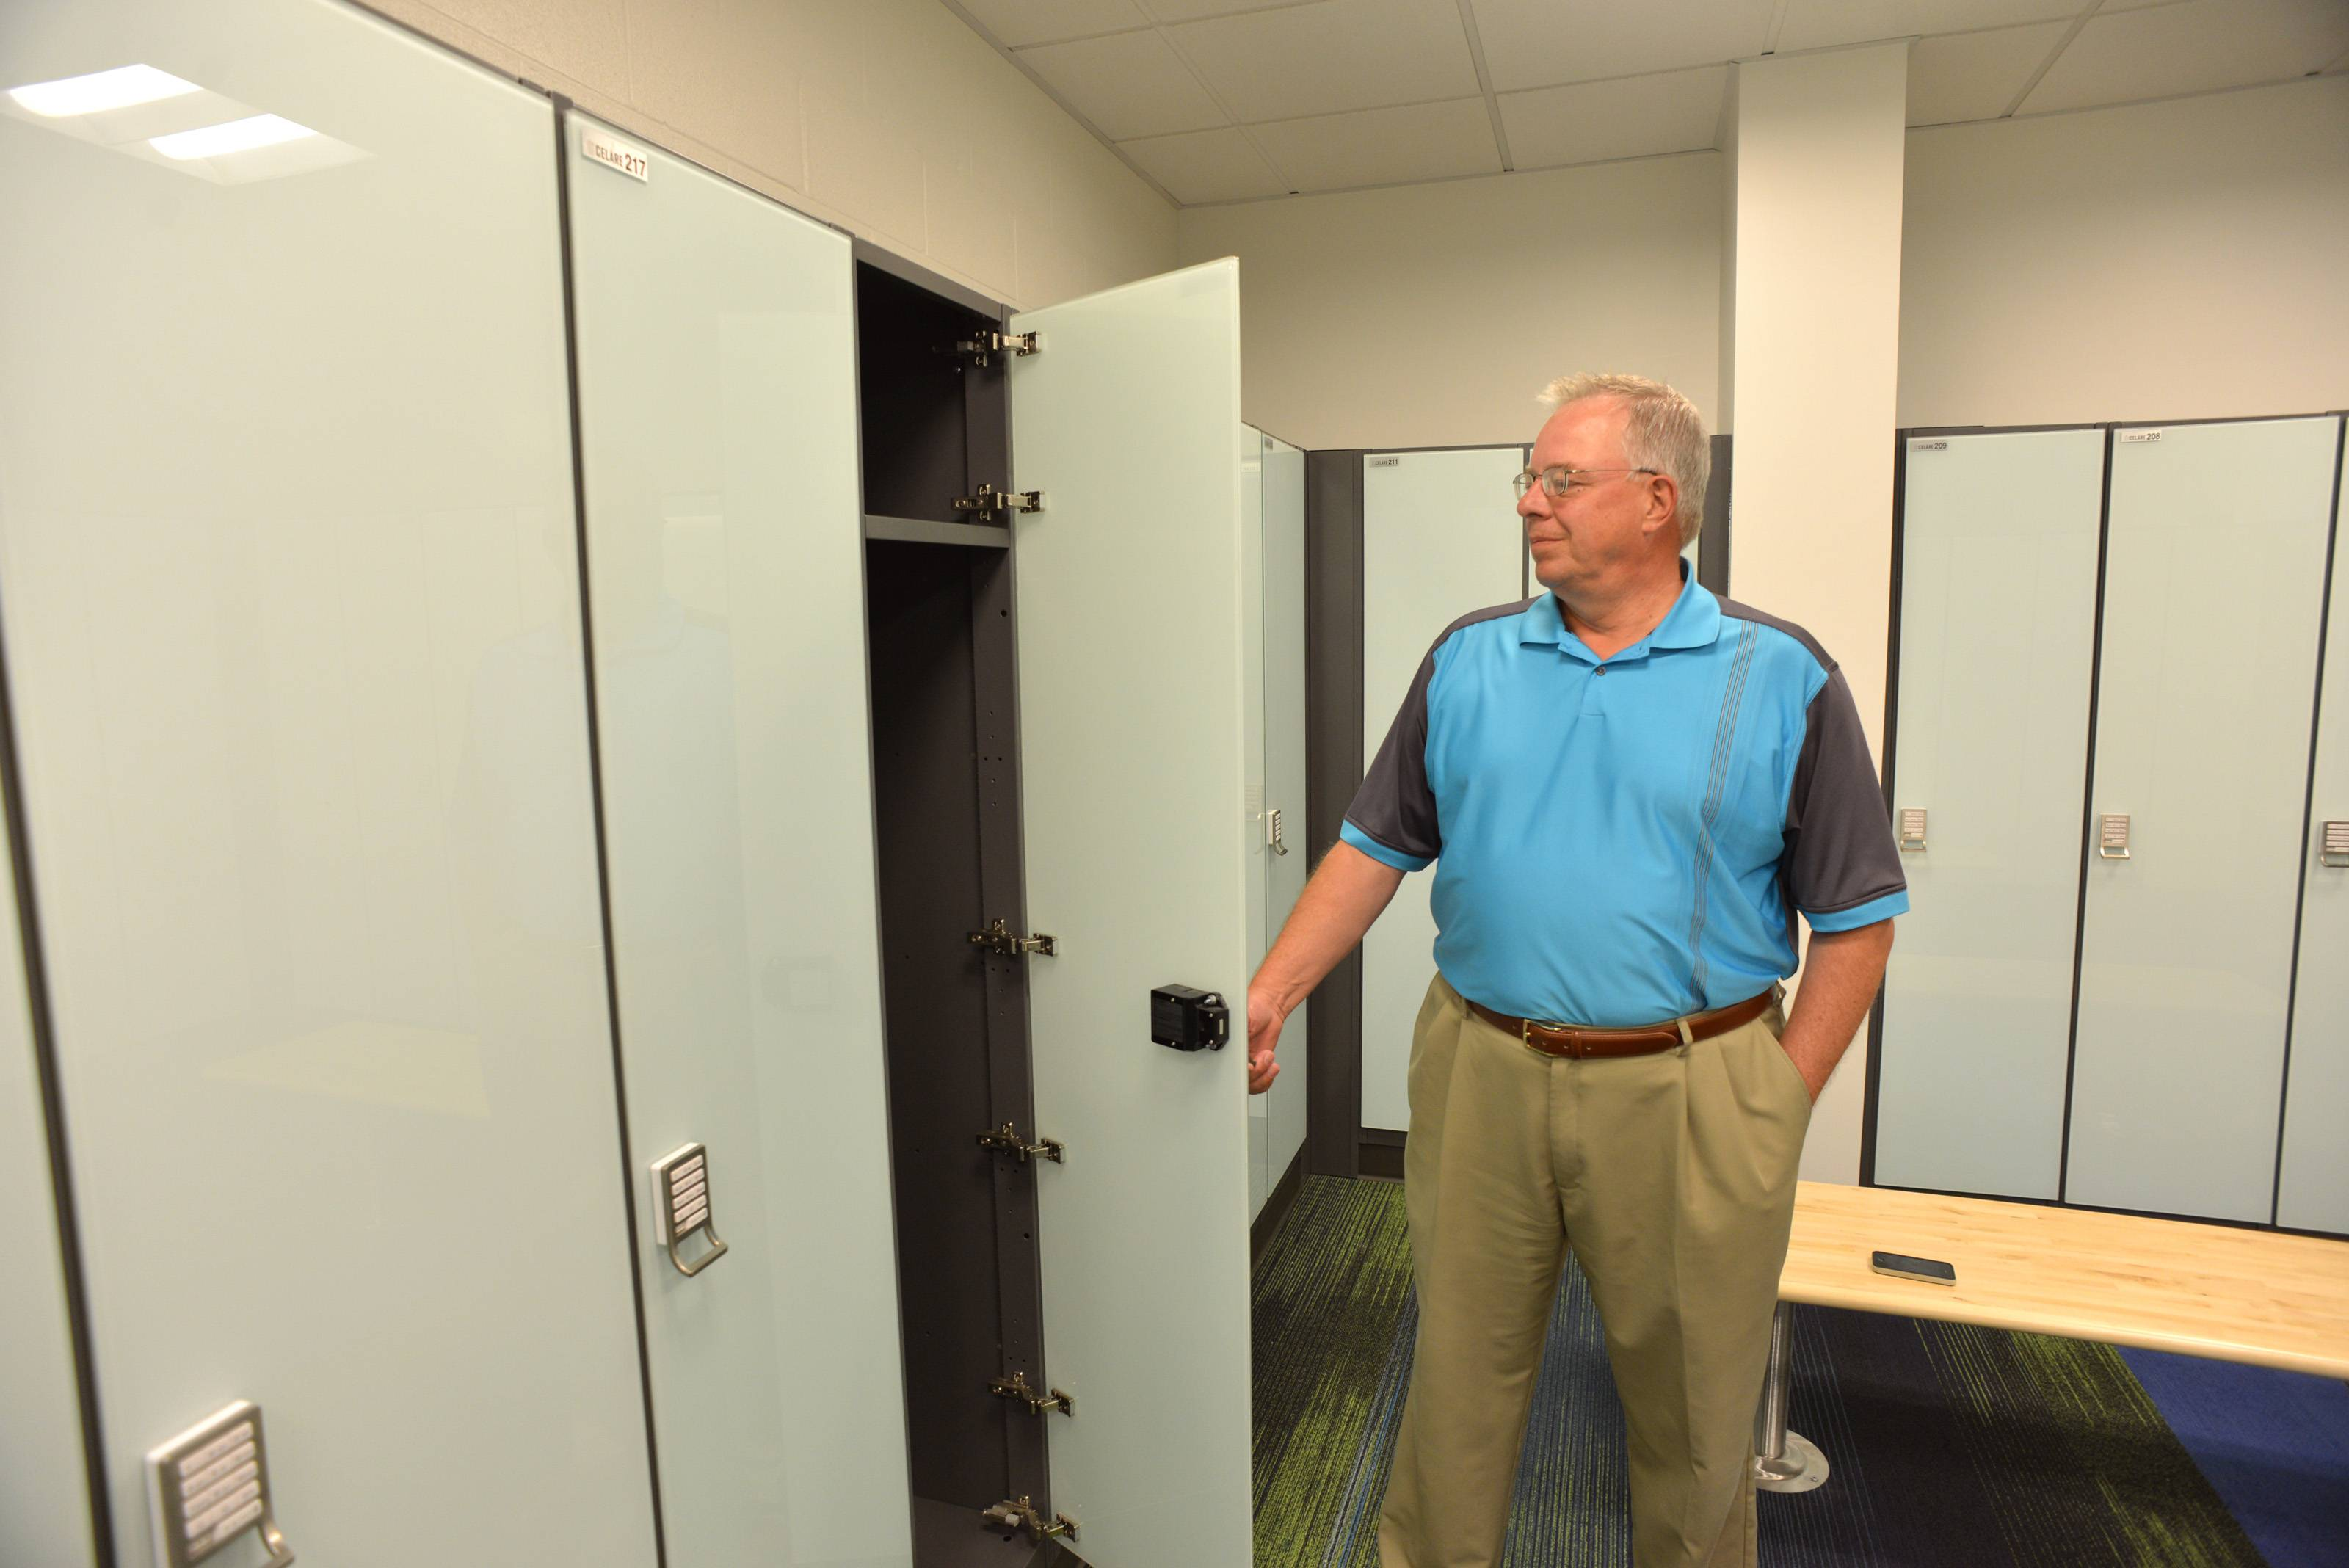 West Chicago Park District Executive Director Gary Major shows off the tempered glass fronts on lockers in the new ARC Center.